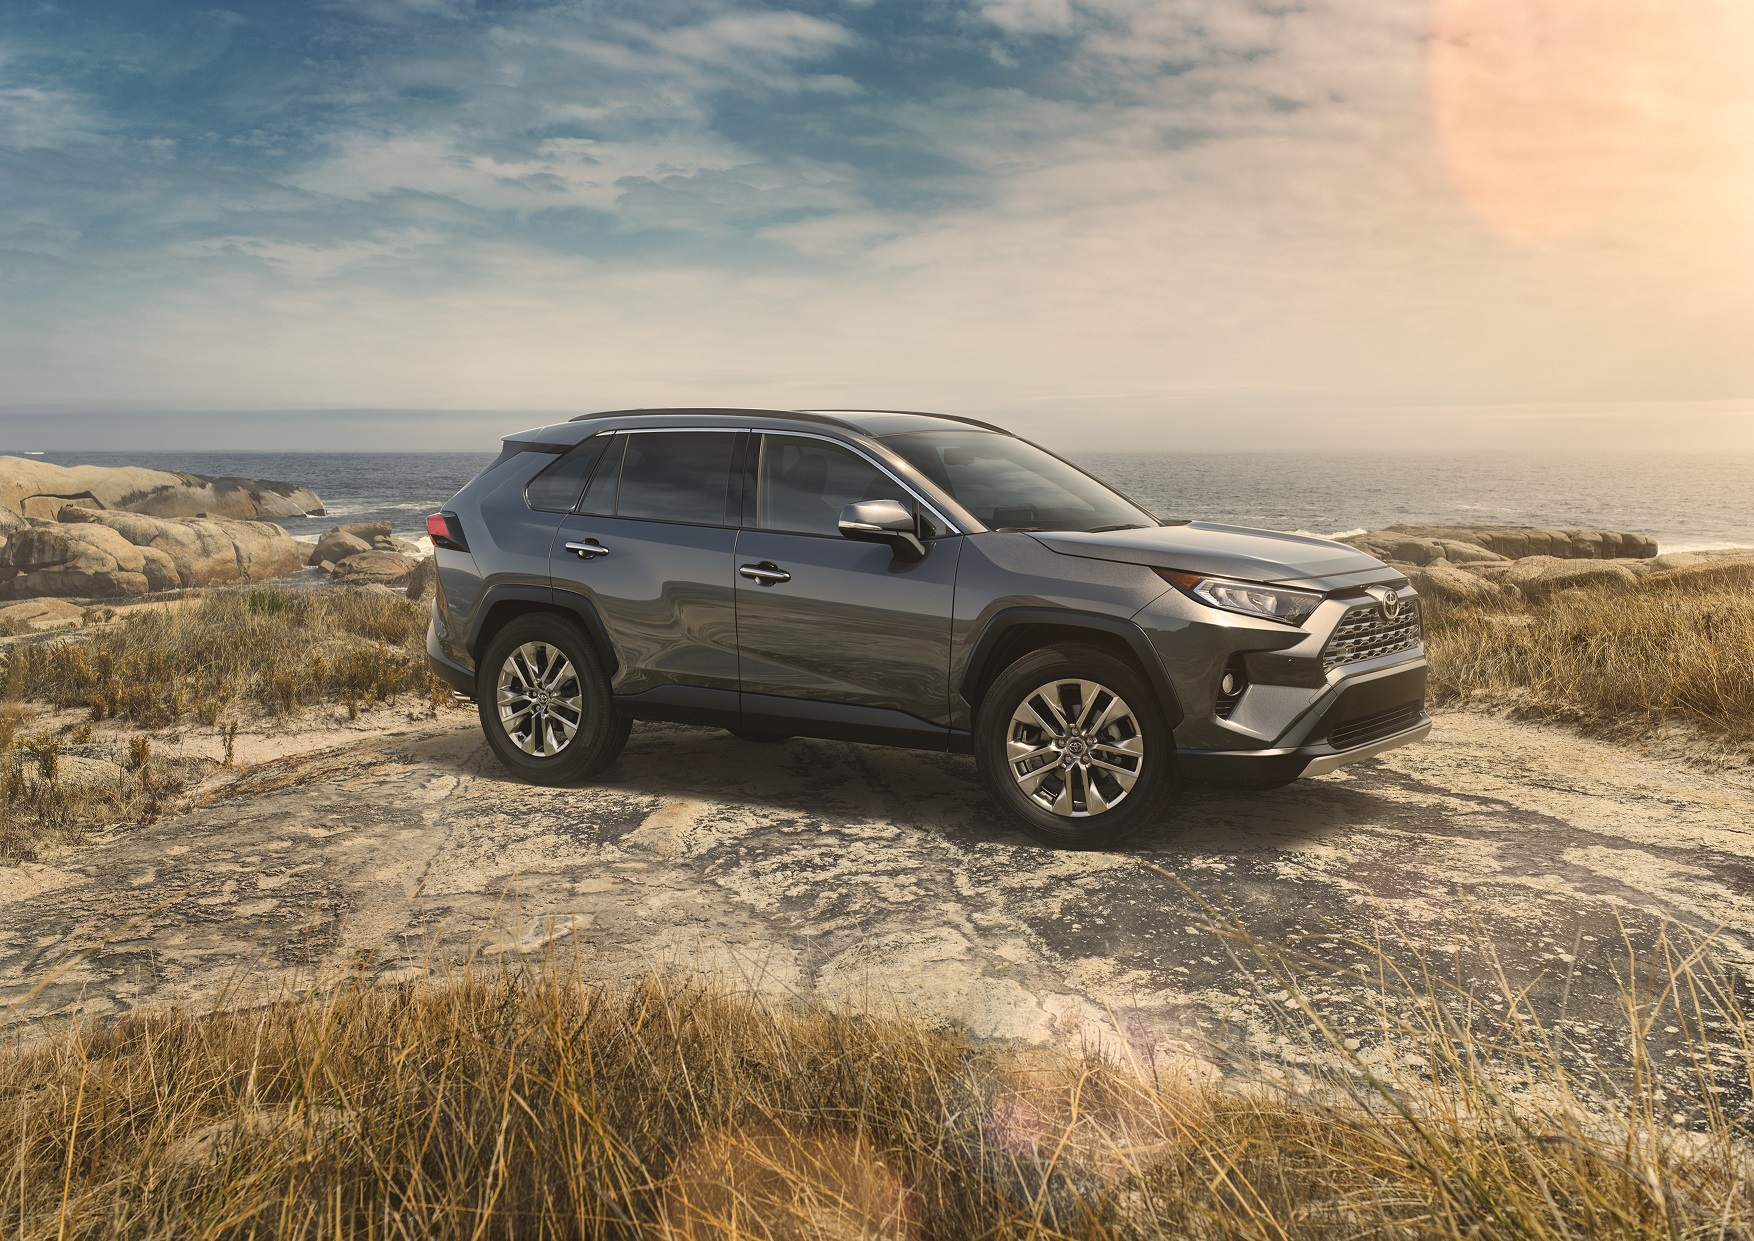 Meet The New Rav4 Toyota Unveils The Next Generation Of One Of